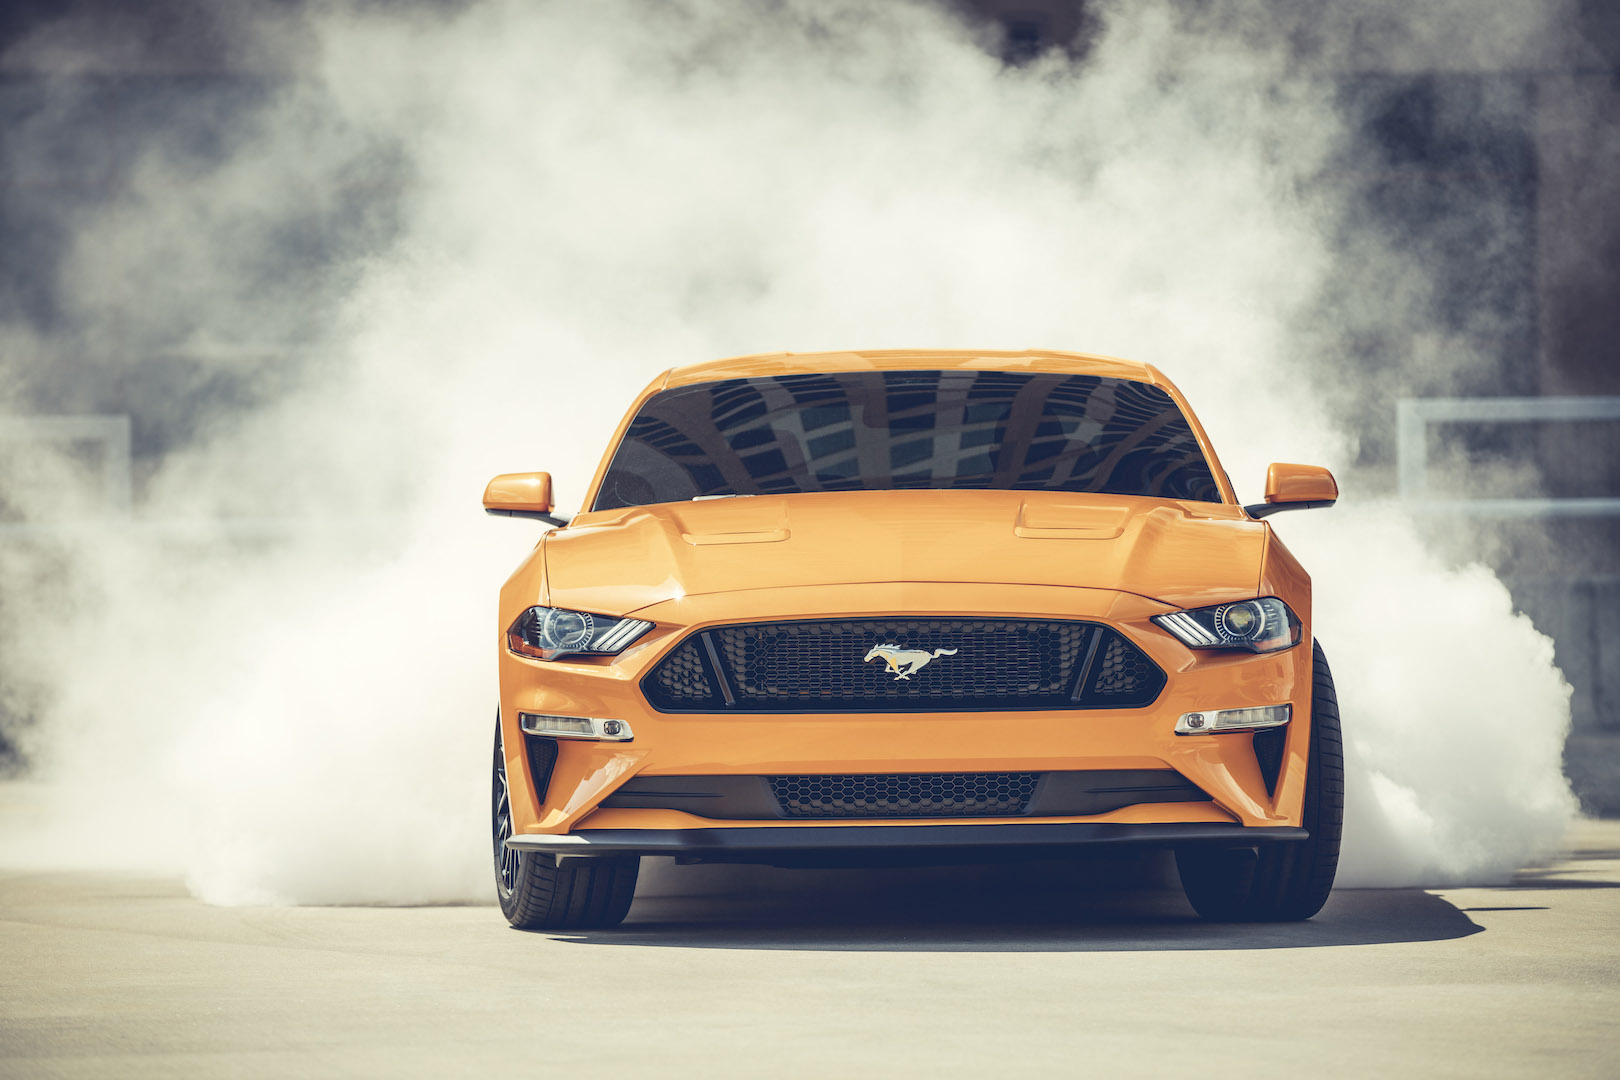 The deal is back: 800-horsepower Ford Mustang GT for $39,995